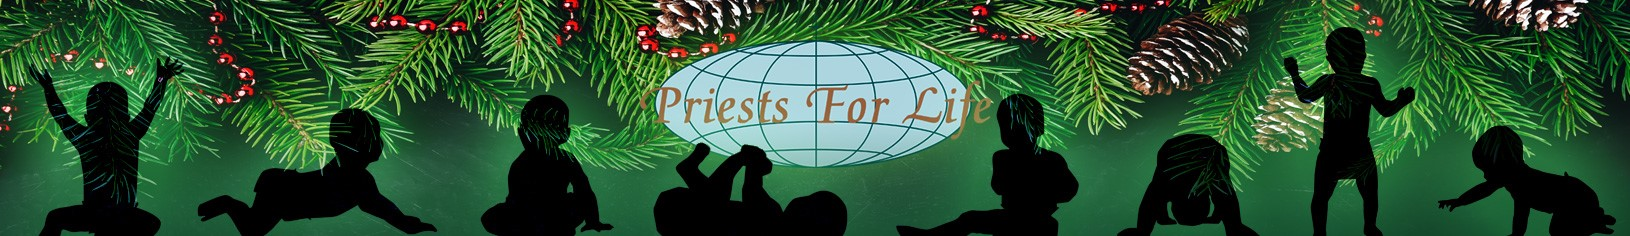 Priests for Life Online Store: Social Media